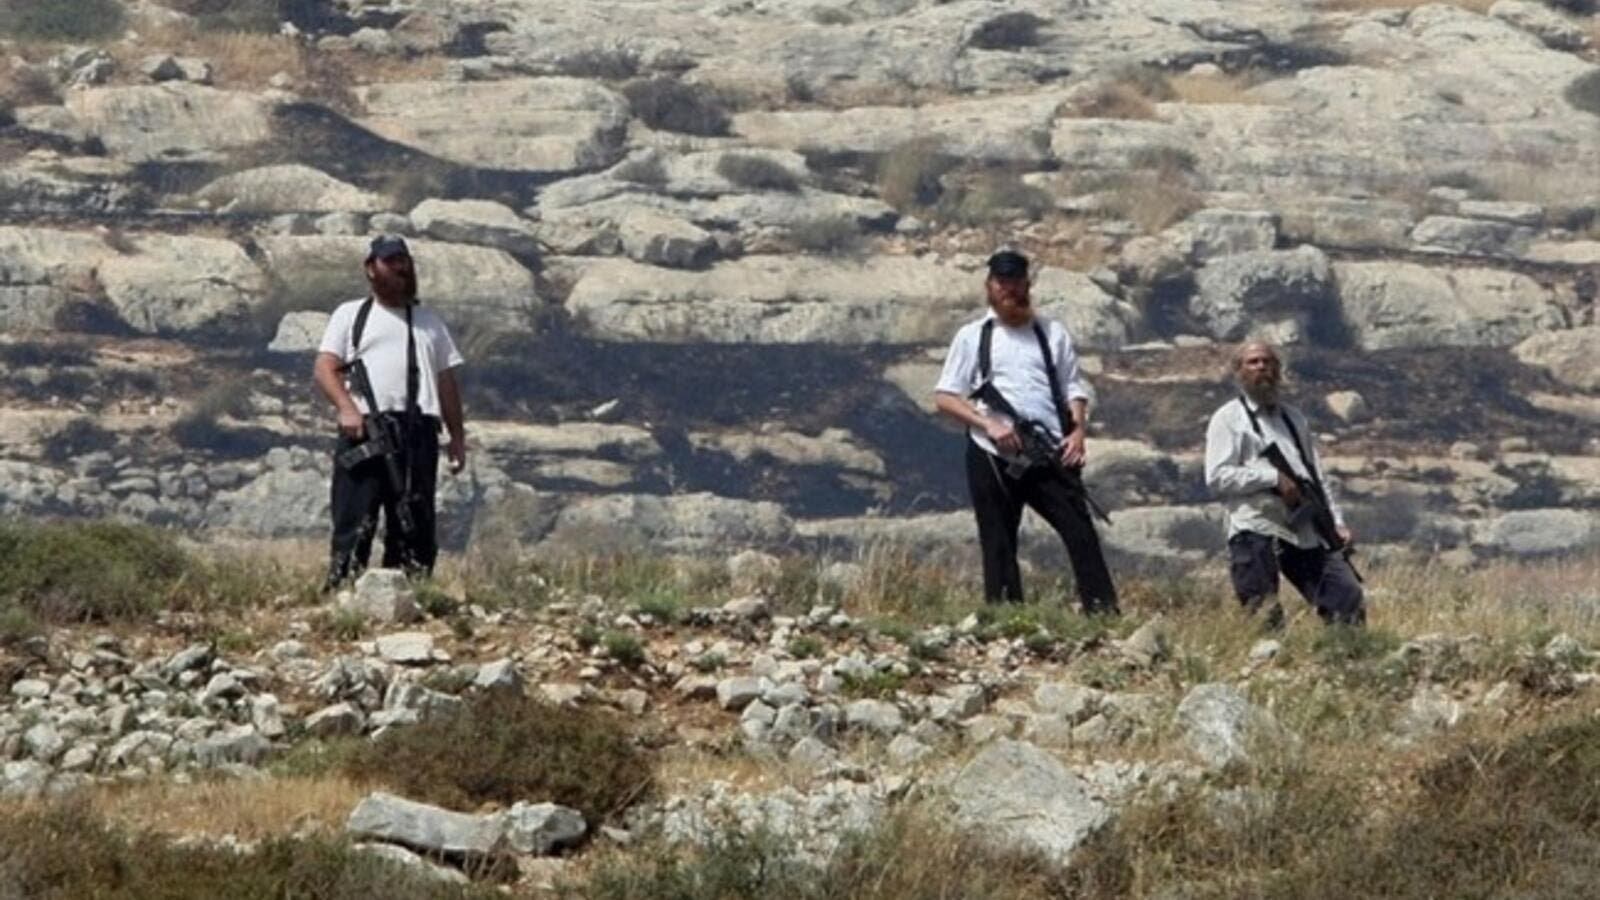 Settlers have also been known to steal crops, damage and burn trees and other plants, and attack places of worship in the area, in an attempt to intimidate Palestinian villagers and farmers from using their land (AFP/File)